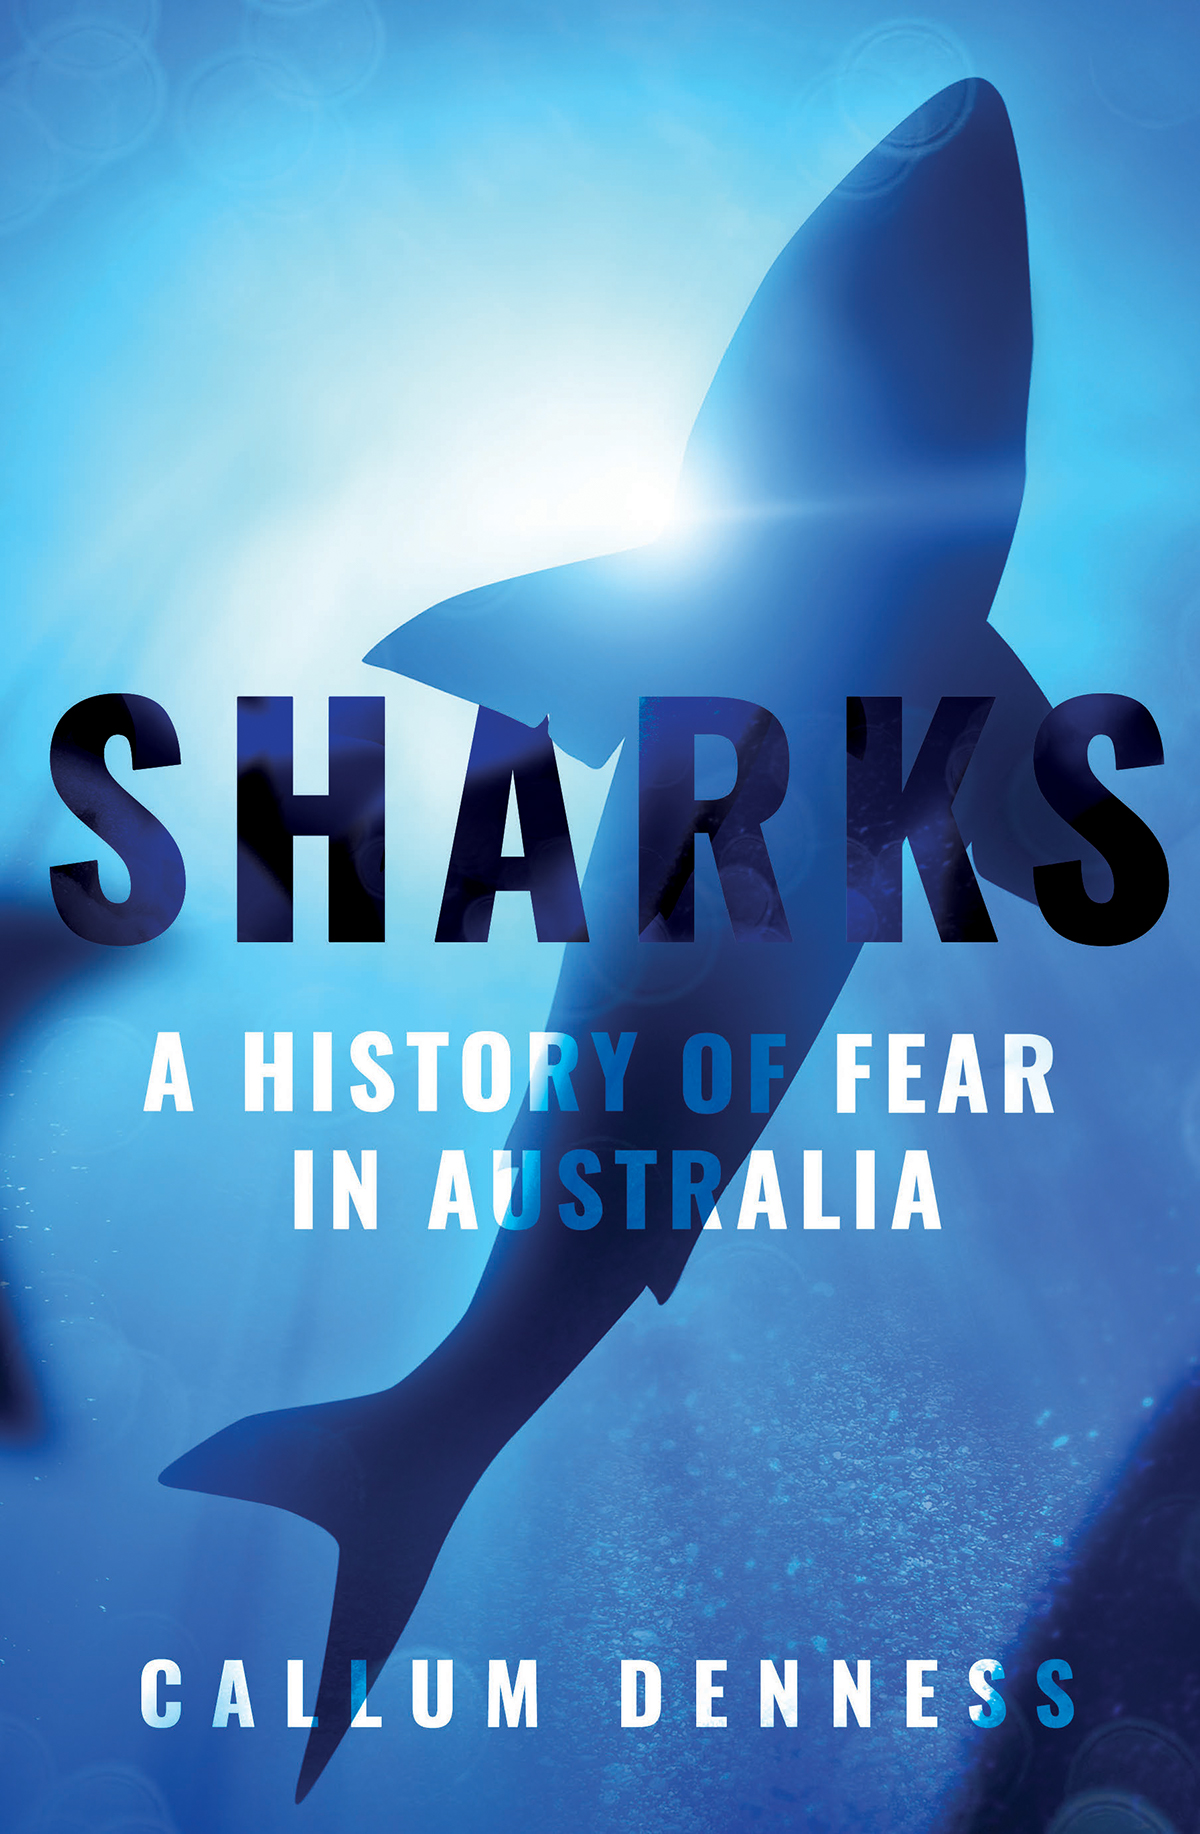 Sharks: A History of Fear in Australia Callum Denness